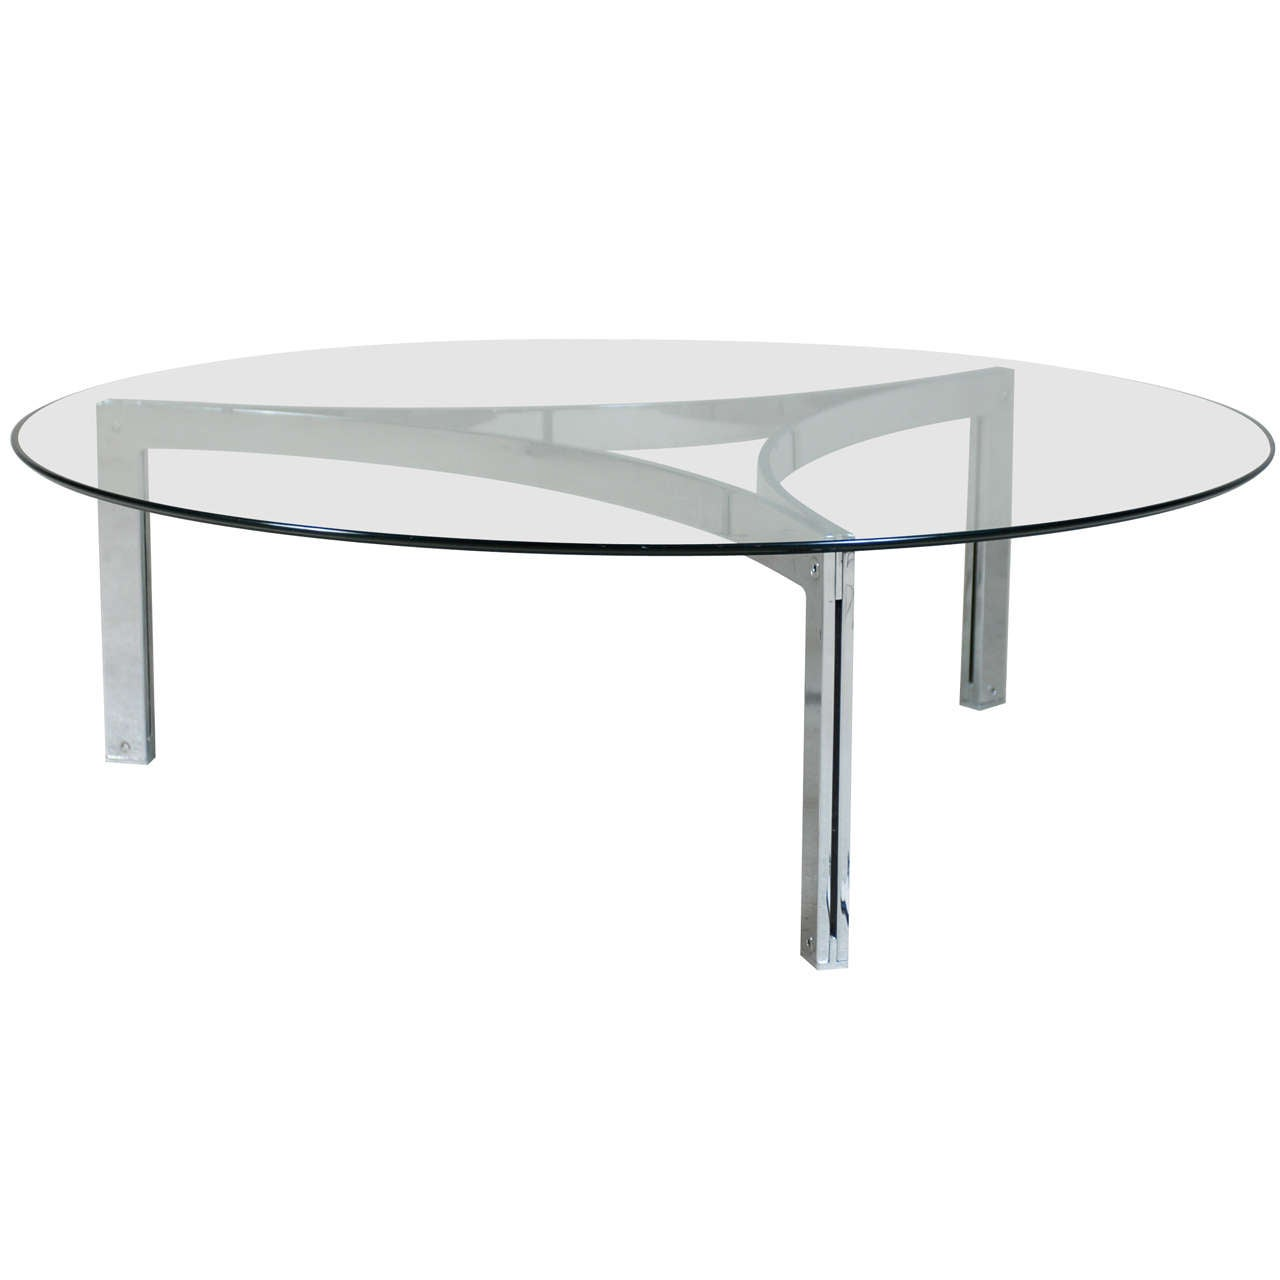 Modernist Architectural Chrome And Glass Round Coffee Table At 1stdibs